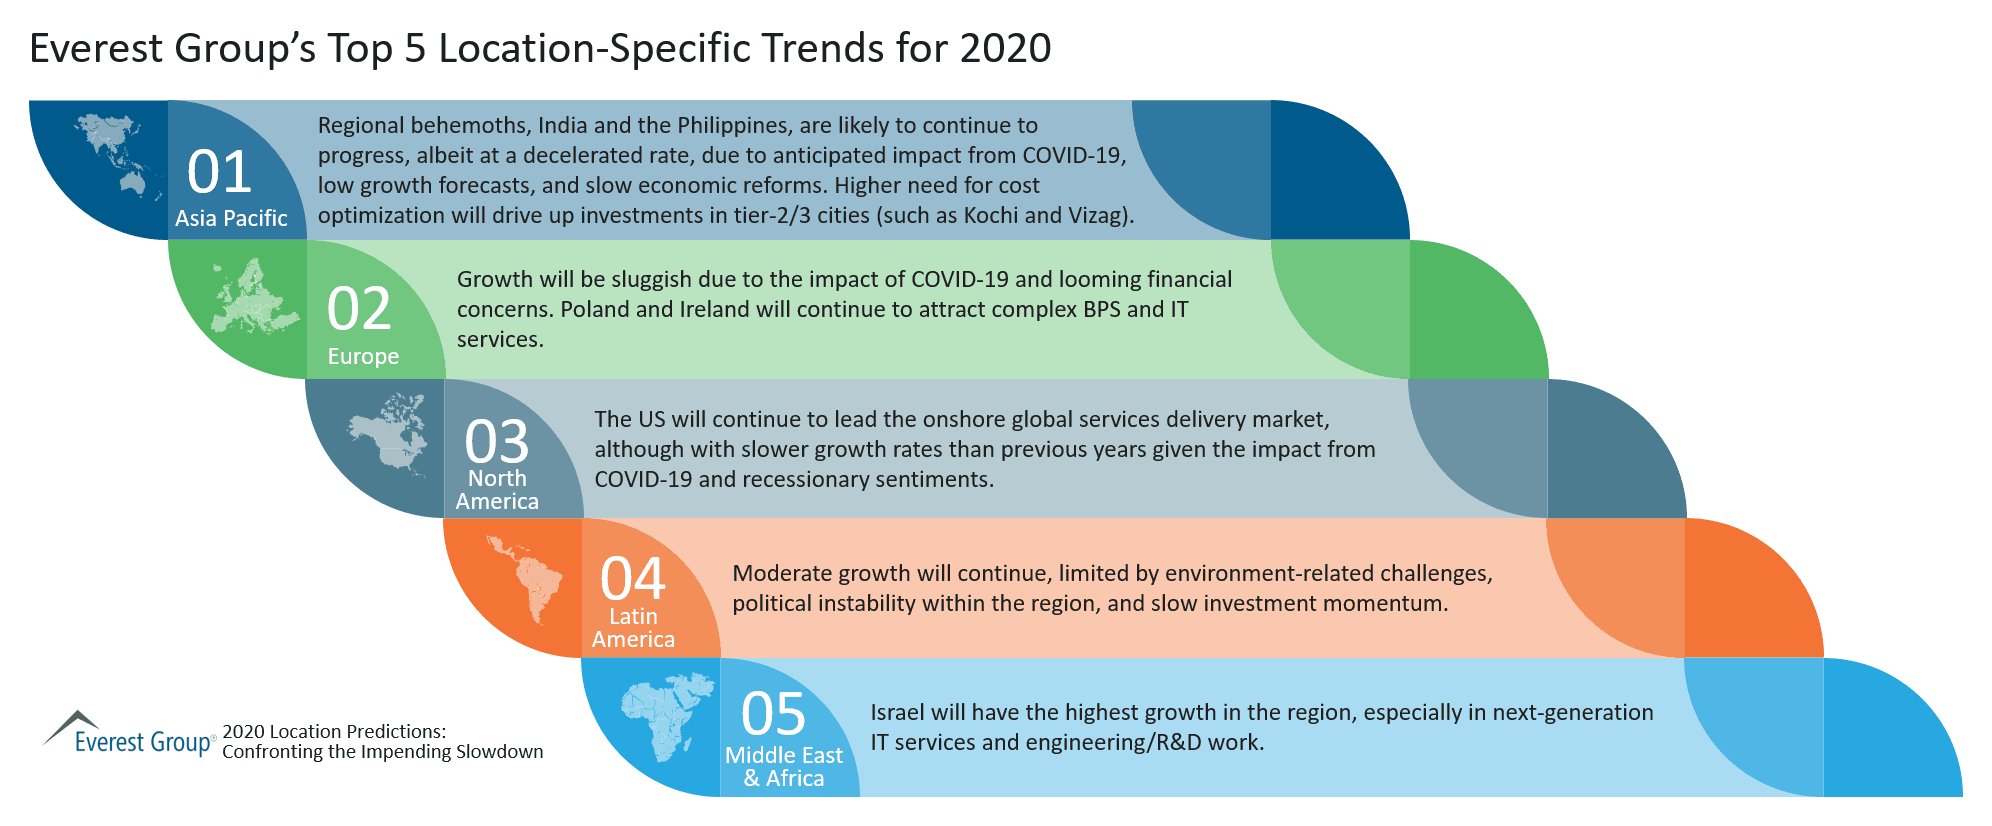 Everest Group Top 5 Location-Specific Trends for 2020